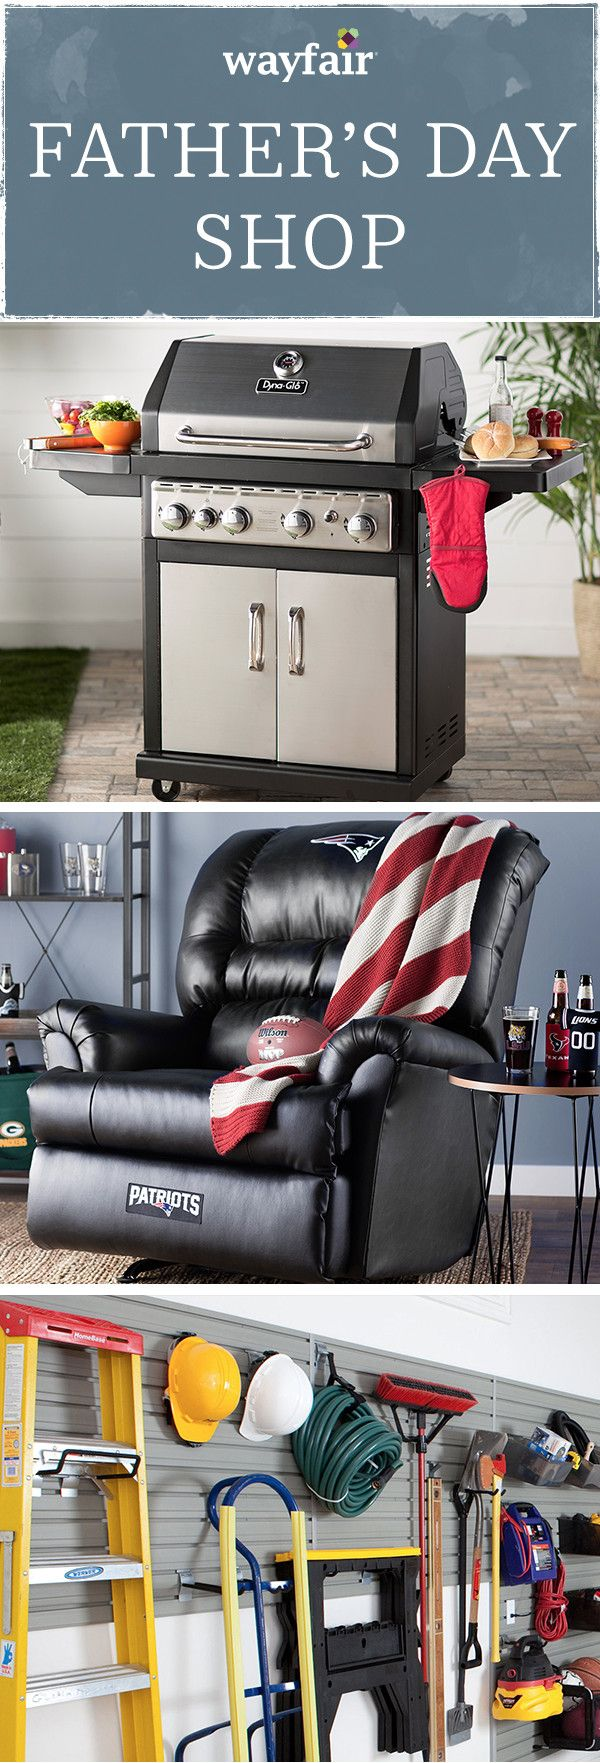 Father's Day is just around the corner, so Wayfair has put together a ton of great sales for anyone shopping for Father's Day gifts. If you have sports fans in the family, grab a bean bag chair or BBQ brand with their favorite team logo. Now is a great time to take advantage of our discounts and browse gifts for dads with any interest! Shop Wayfair today for exclusive deals up to 70% off. Free shipping on all orders over $49.